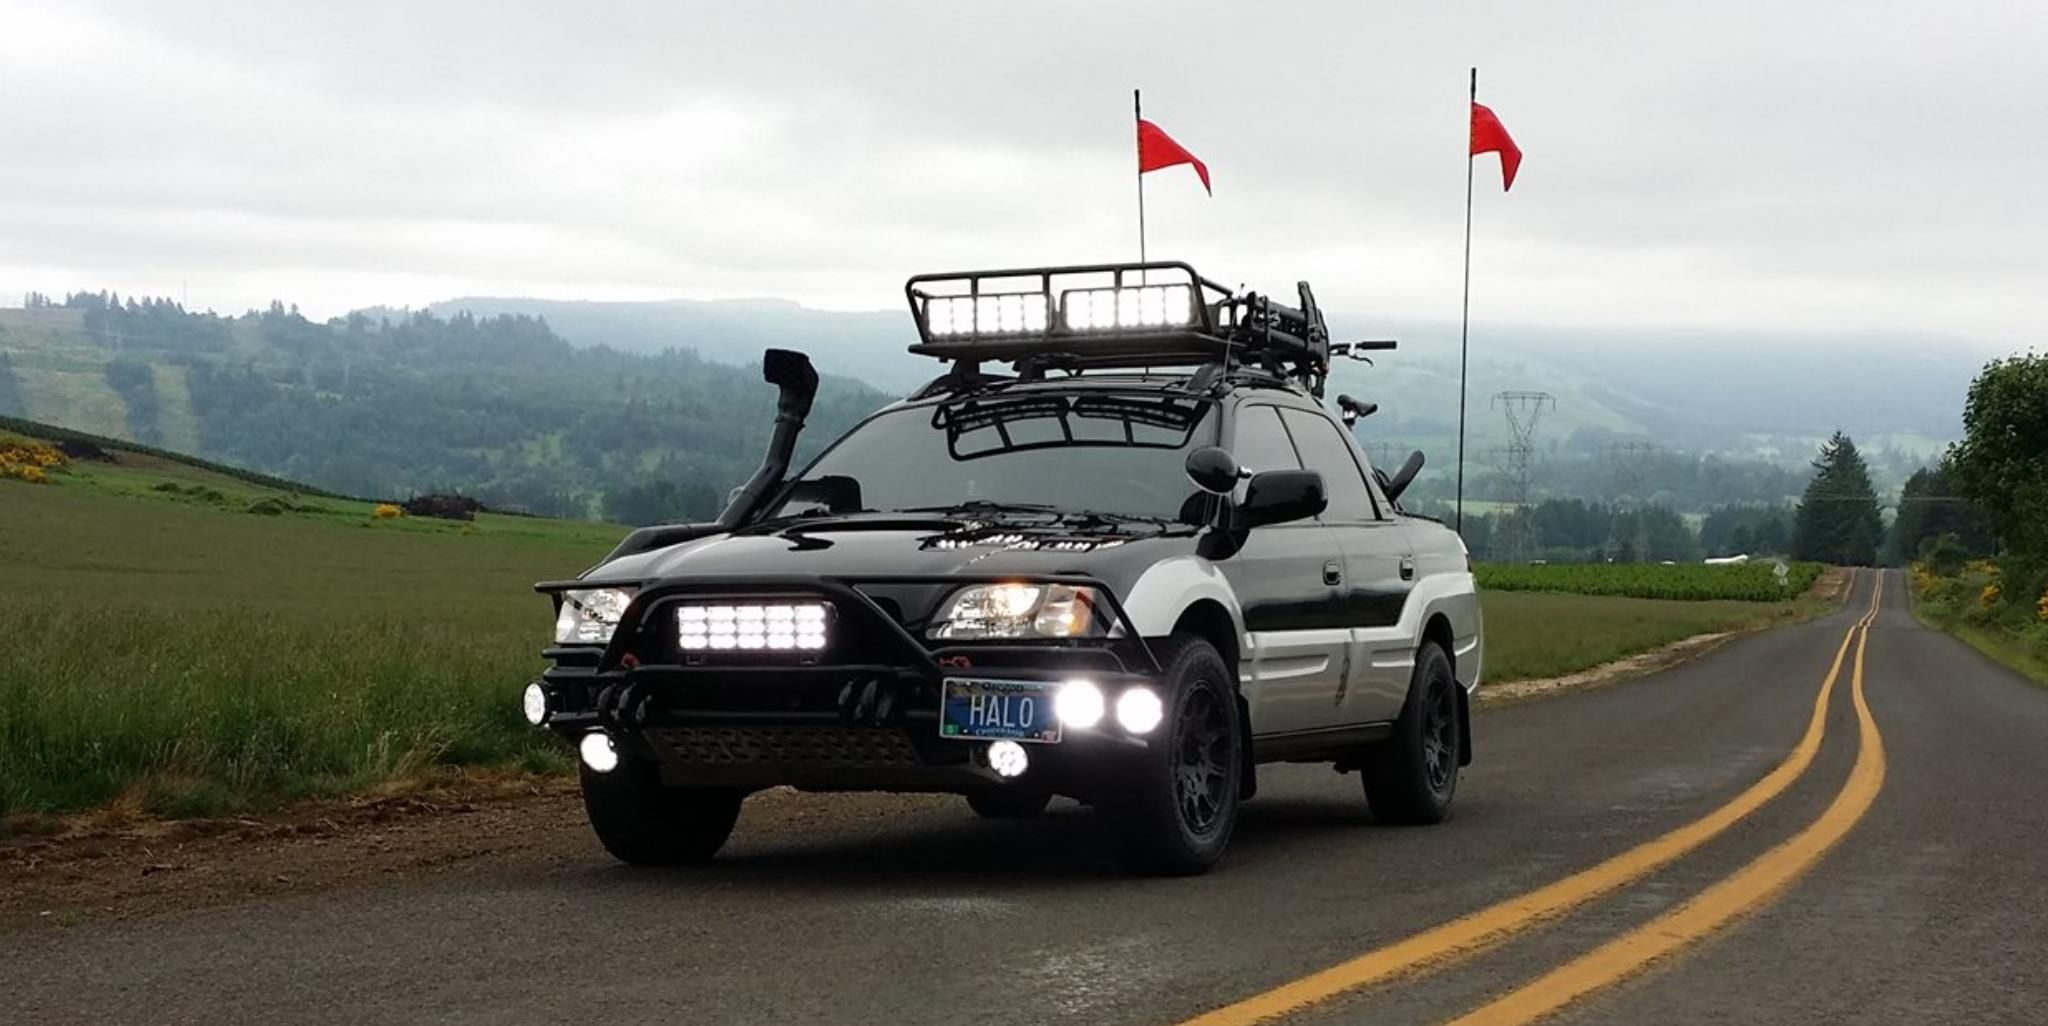 tricked out subaru outback - Google Search | Outback ...